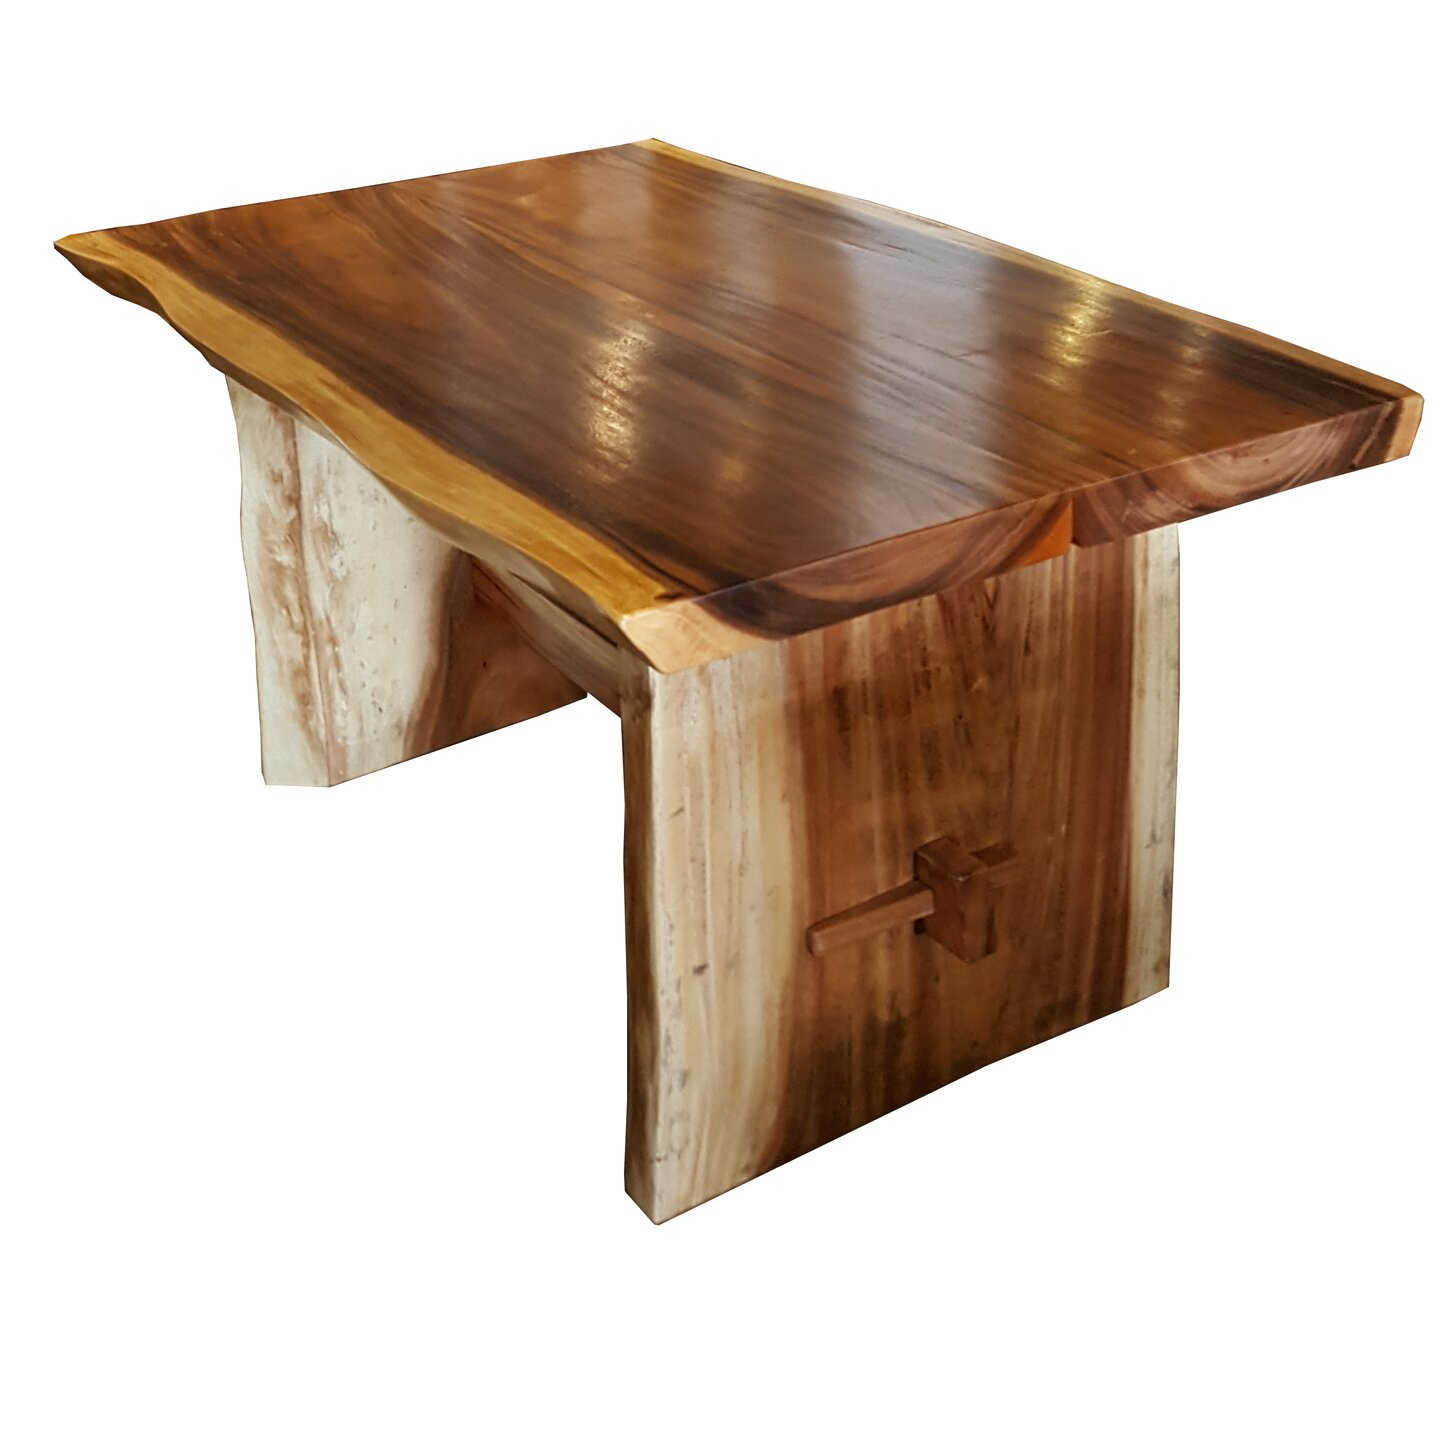 Chic Teak Coffee Table: ChicTeak Suar Dining Table